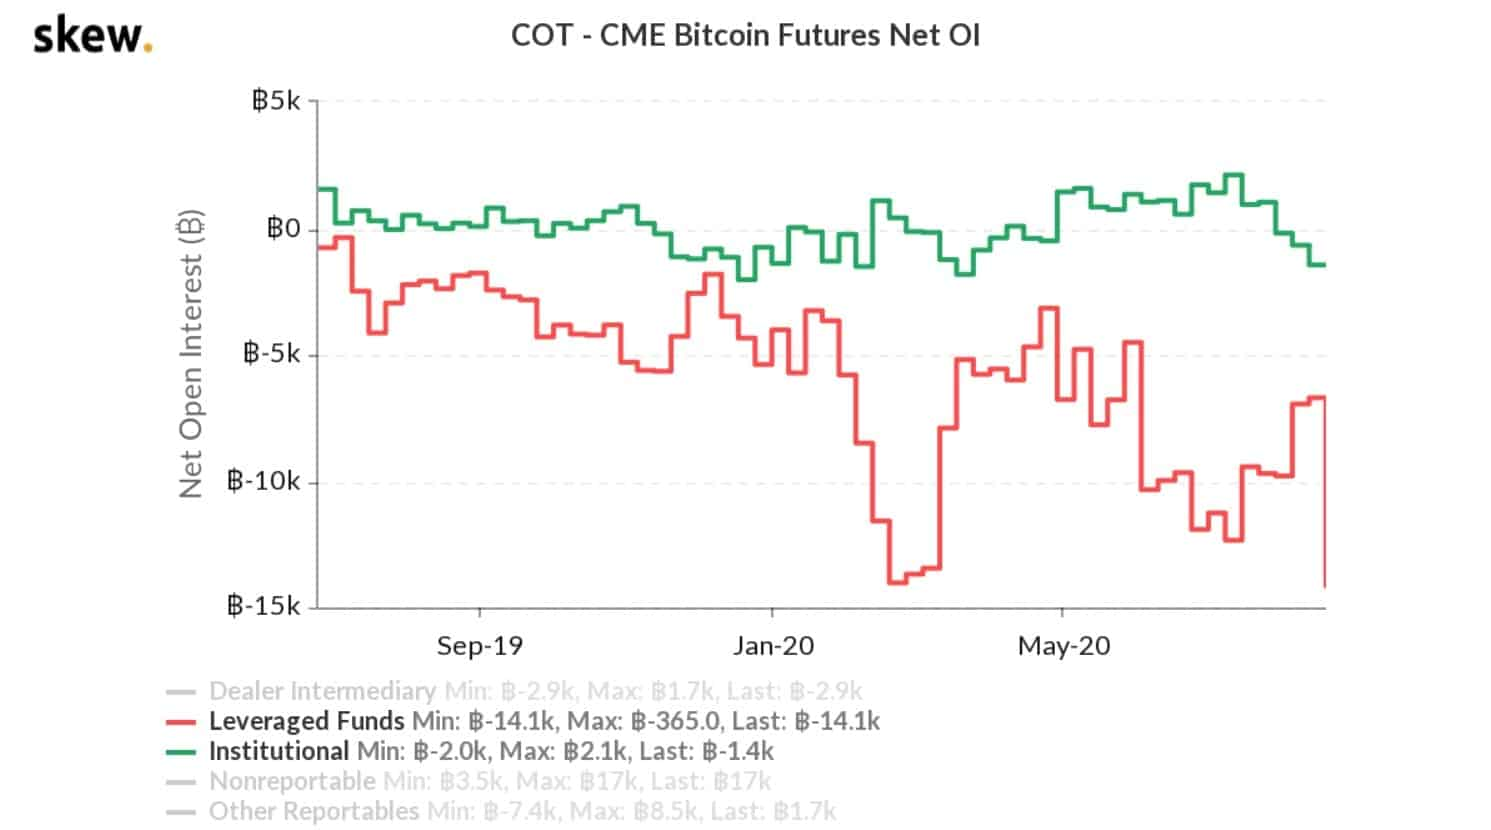 Bitcoin CME Shorts At All-Time High: Institutional Investors Know Something Or Short Squeeze Coming?